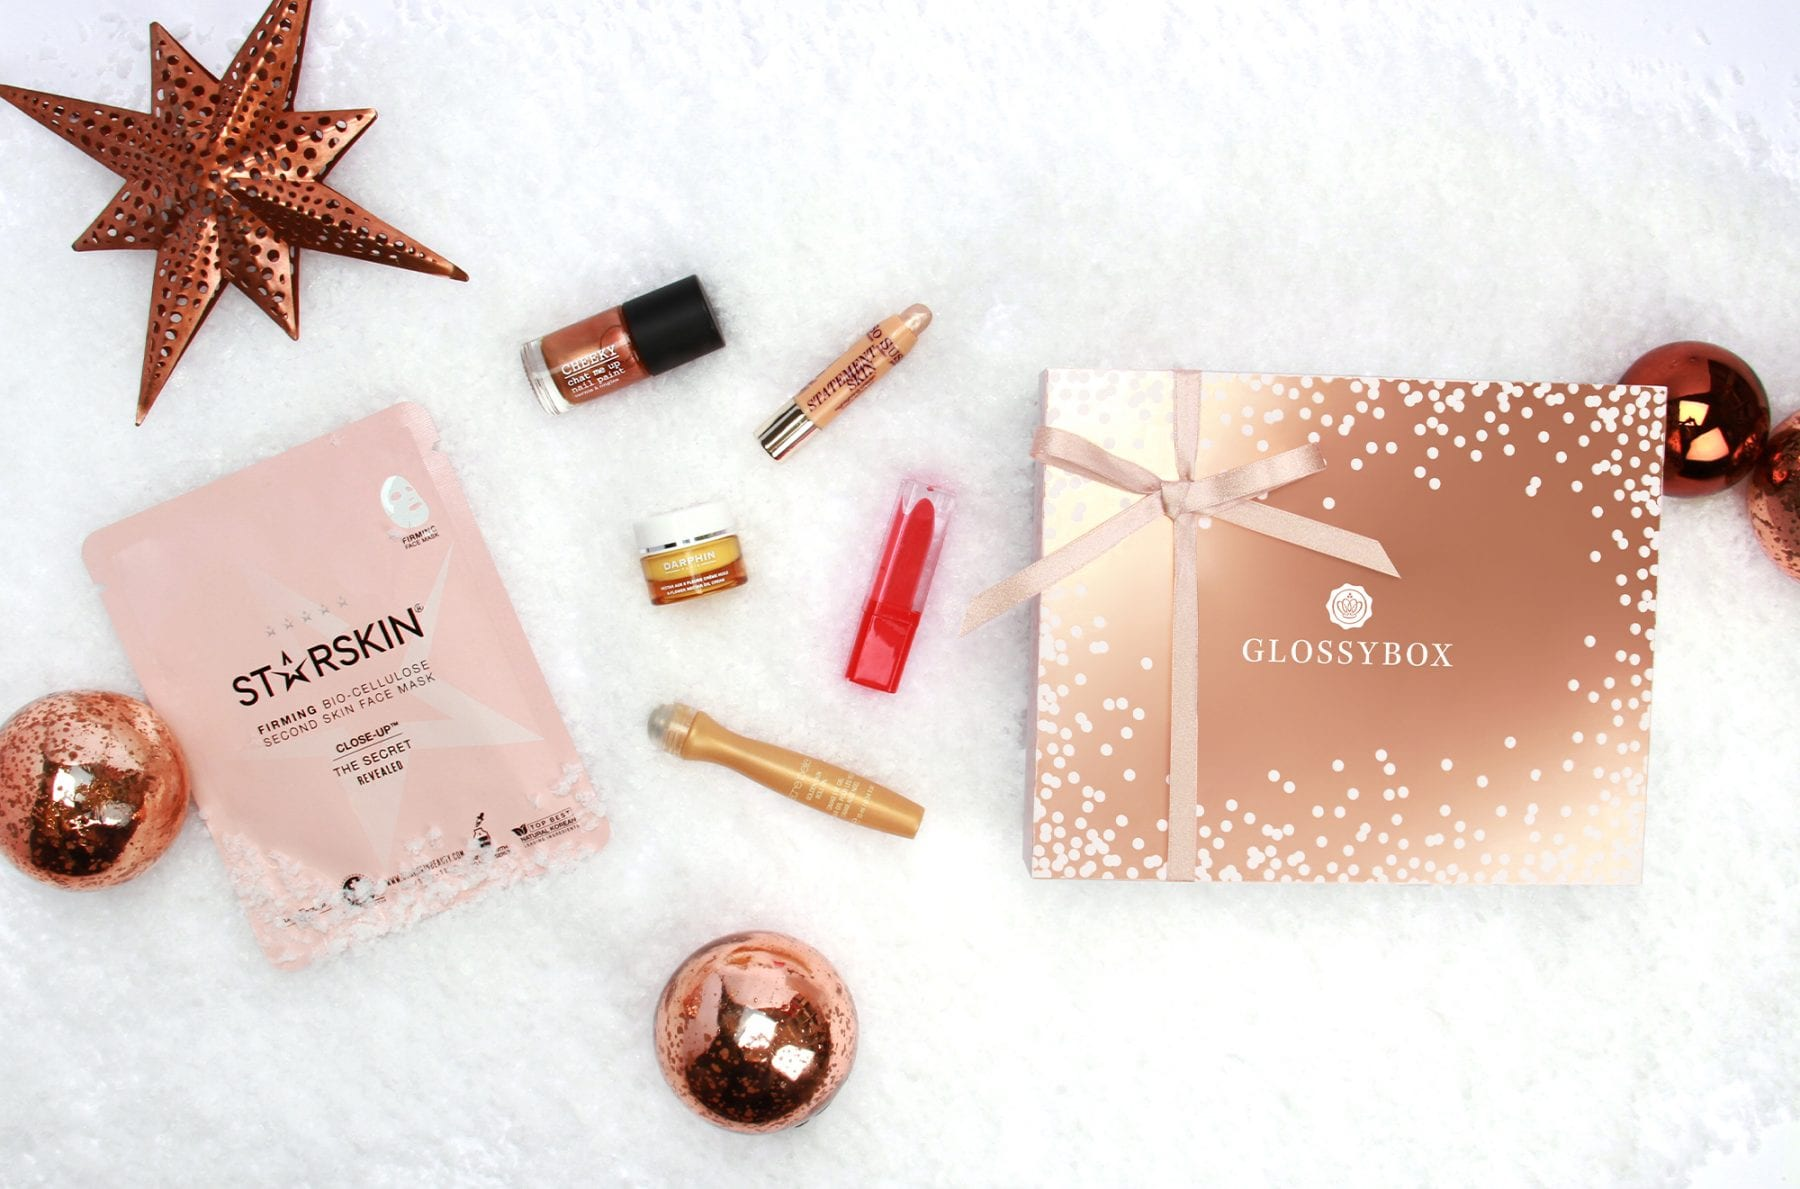 Here's What The Glossies Are Saying About December's Box…